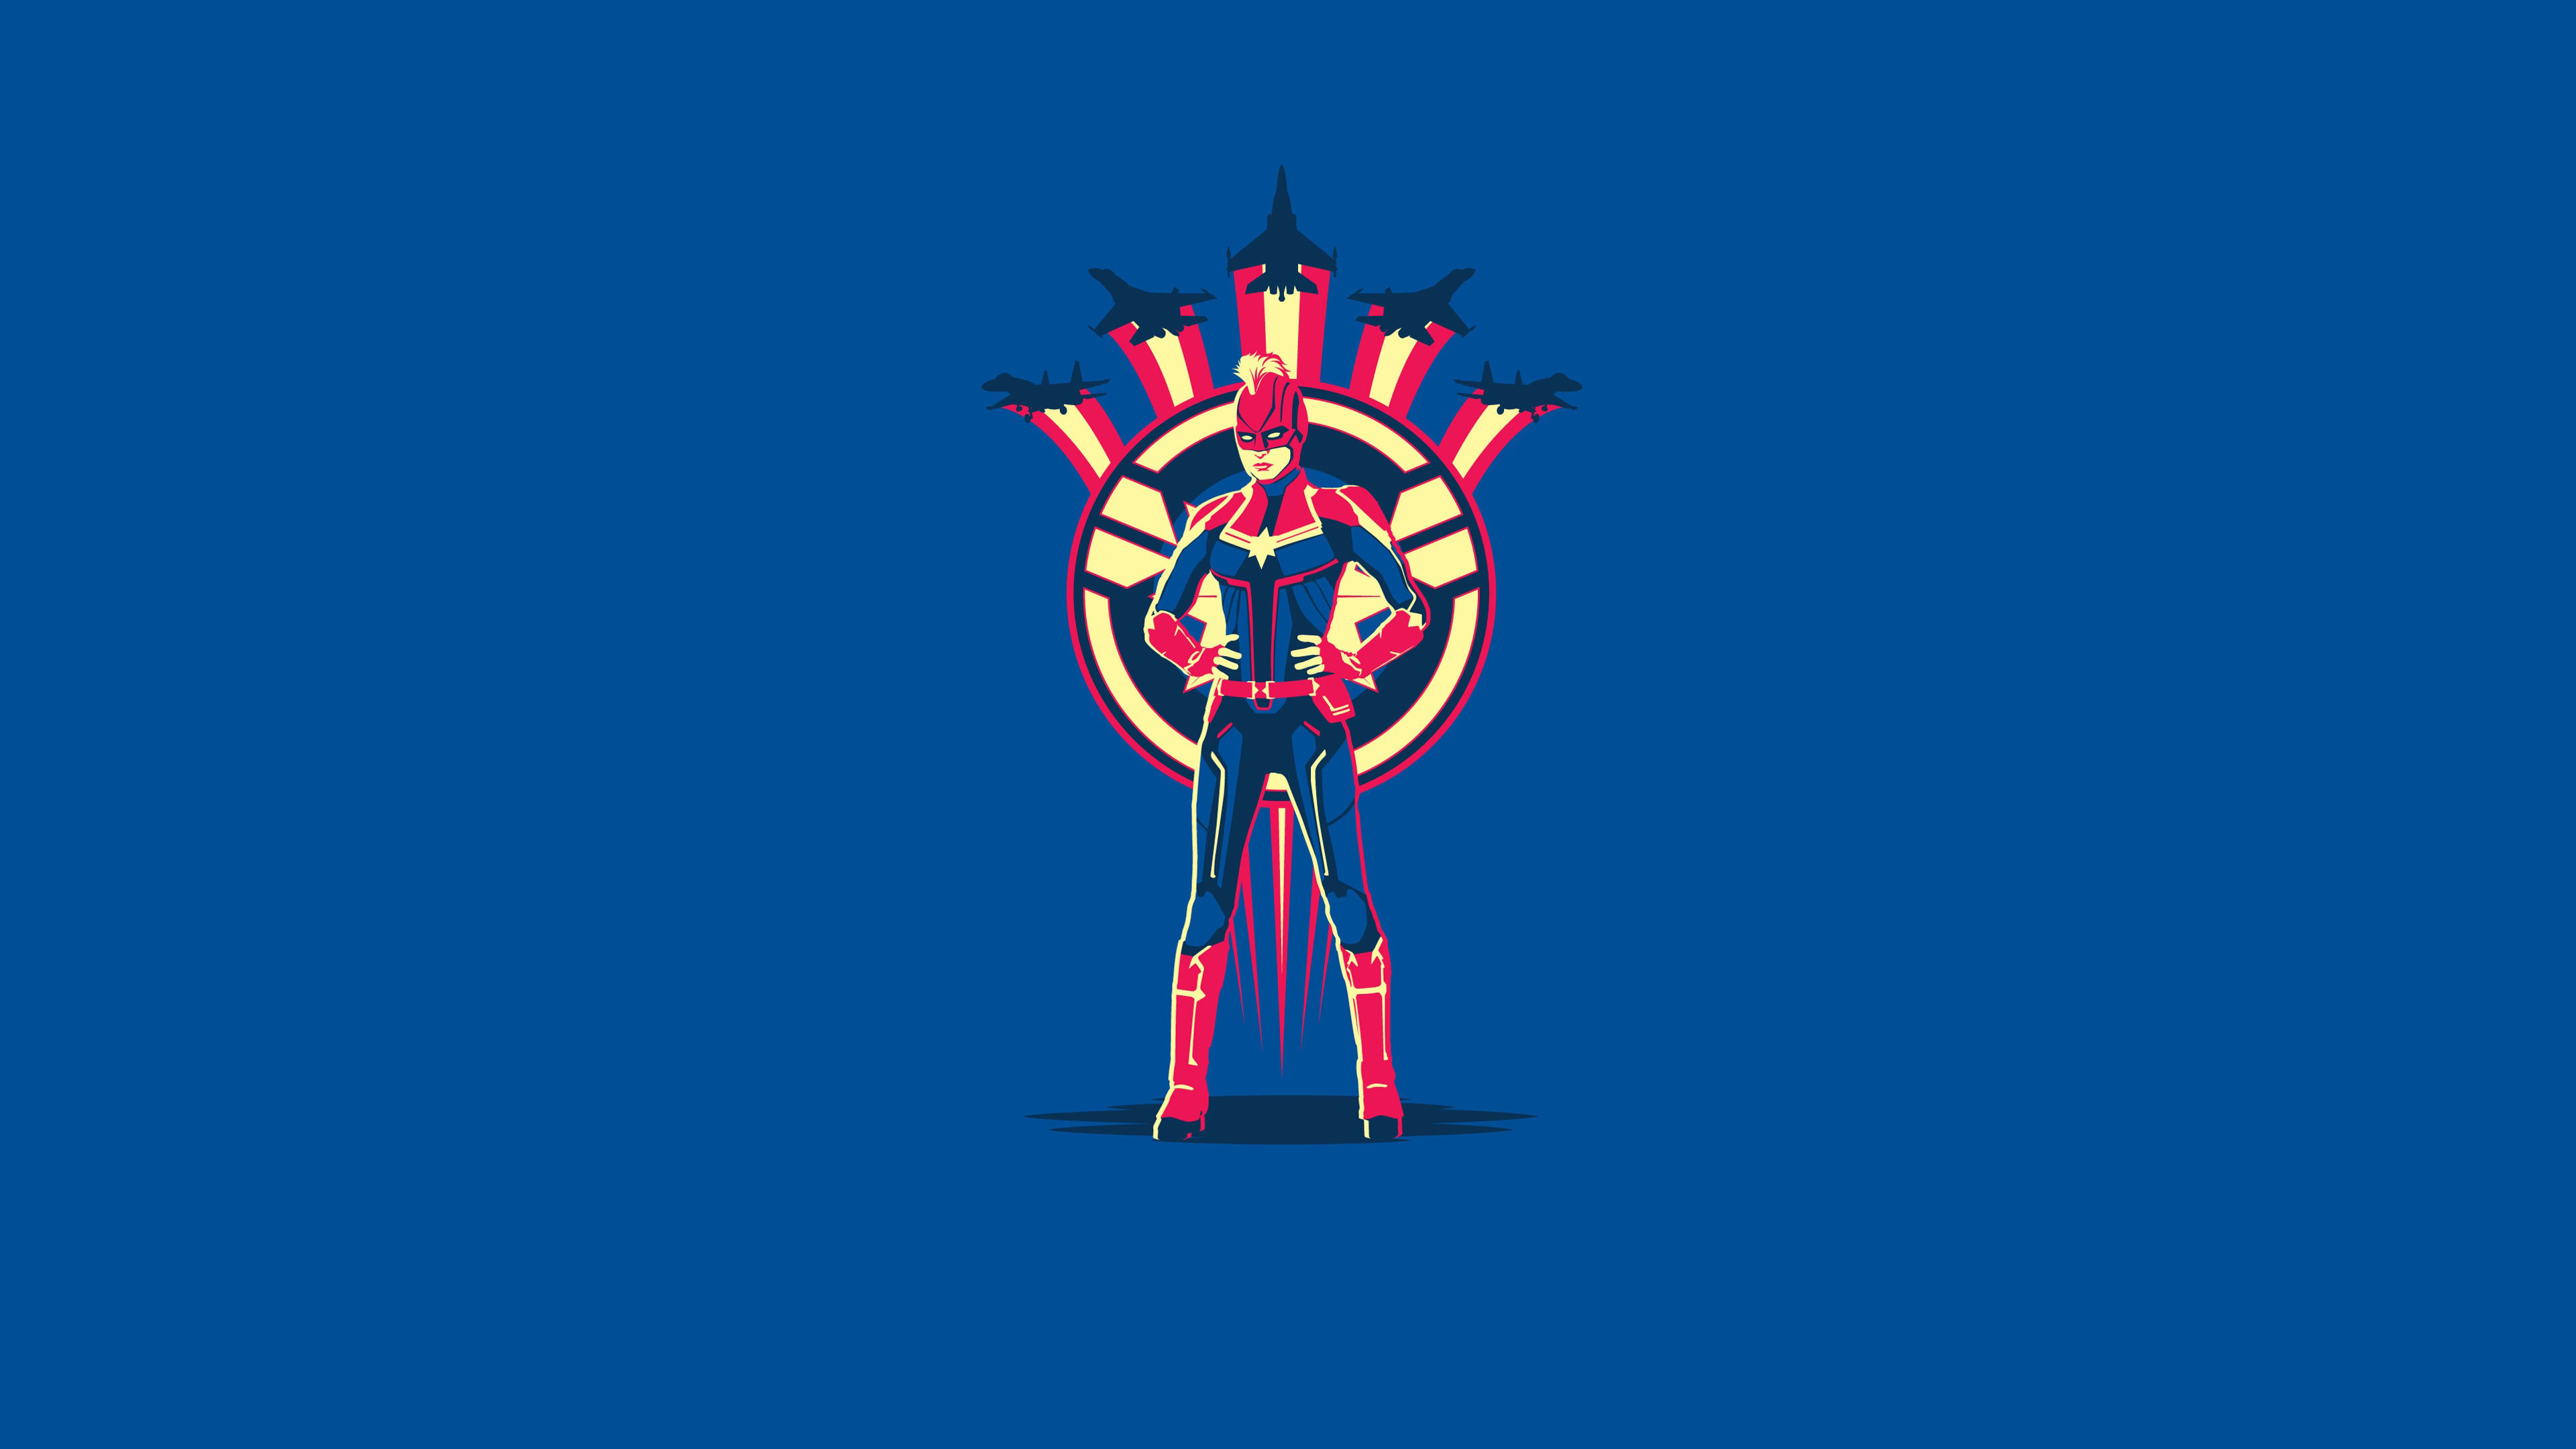 Marvel Minimalist Wallpaper Posted By Michelle Thompson